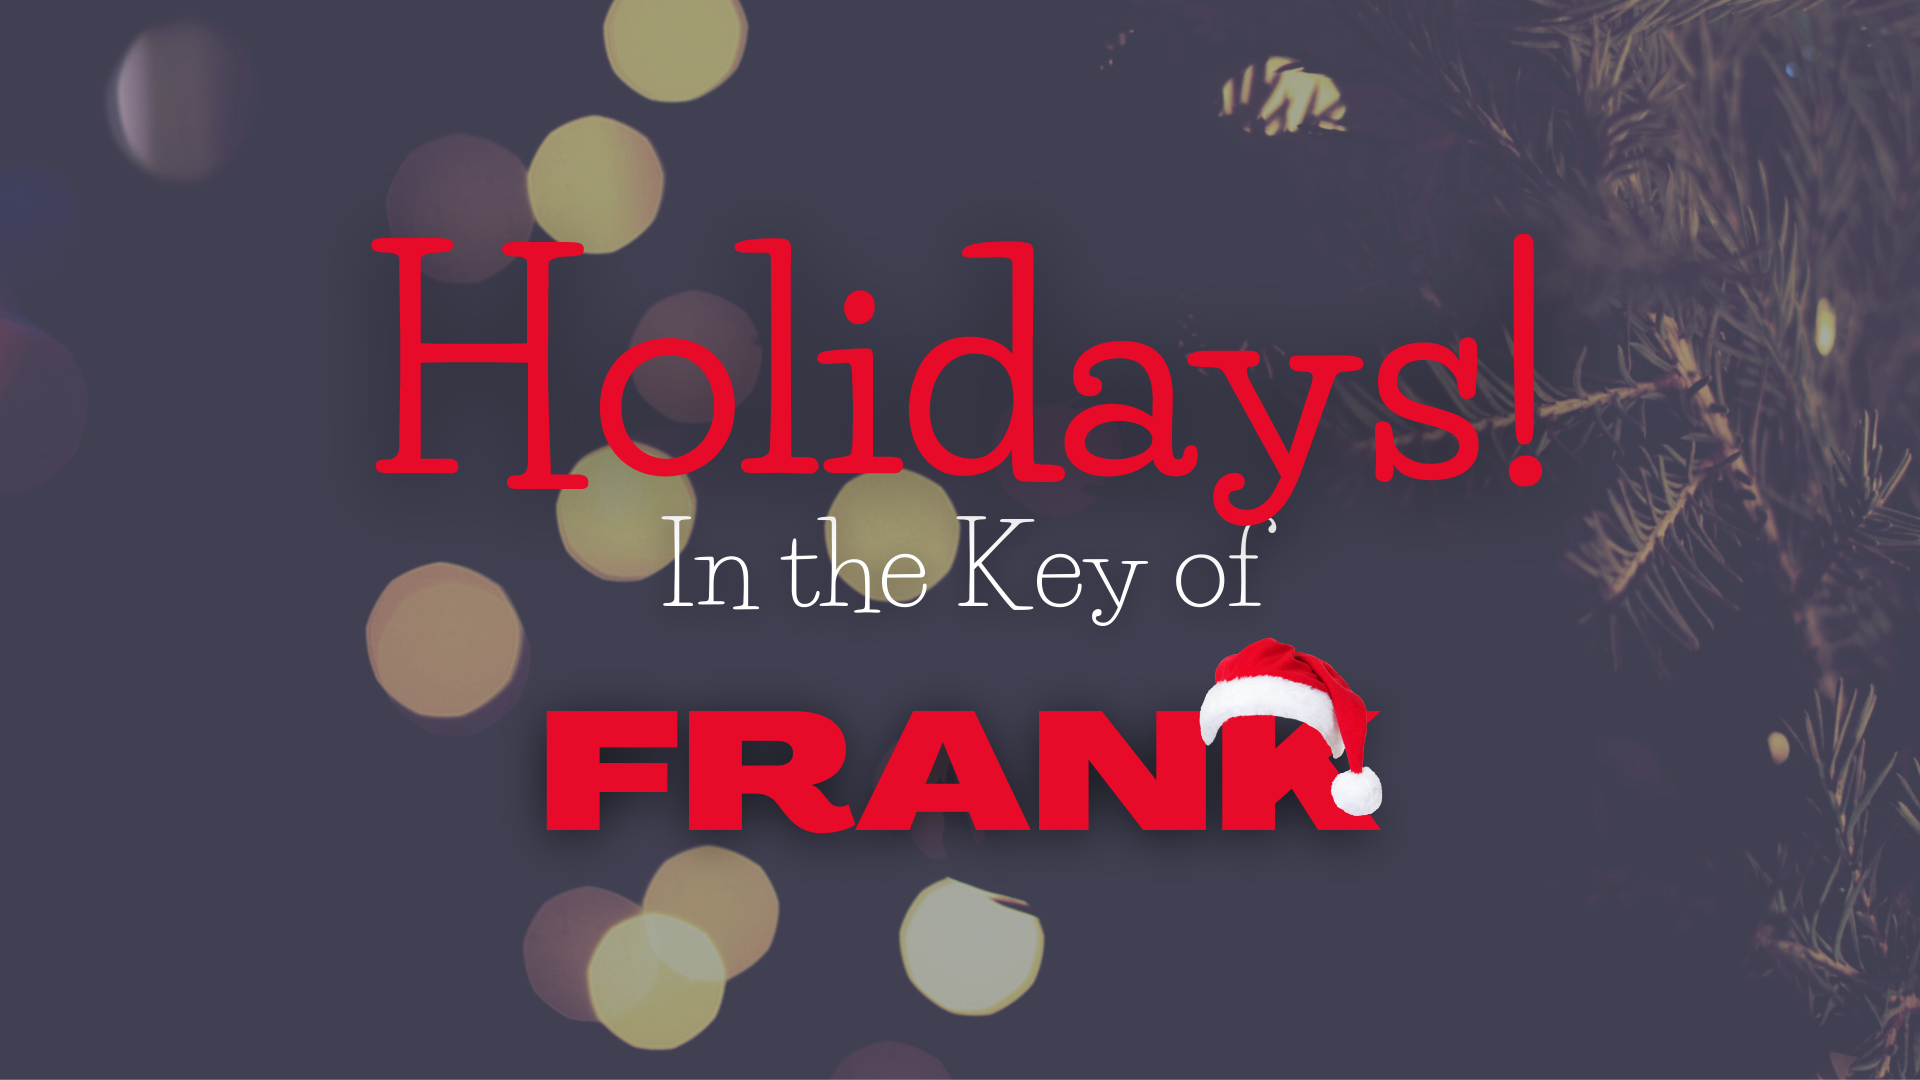 Holidays in the Key of Frank